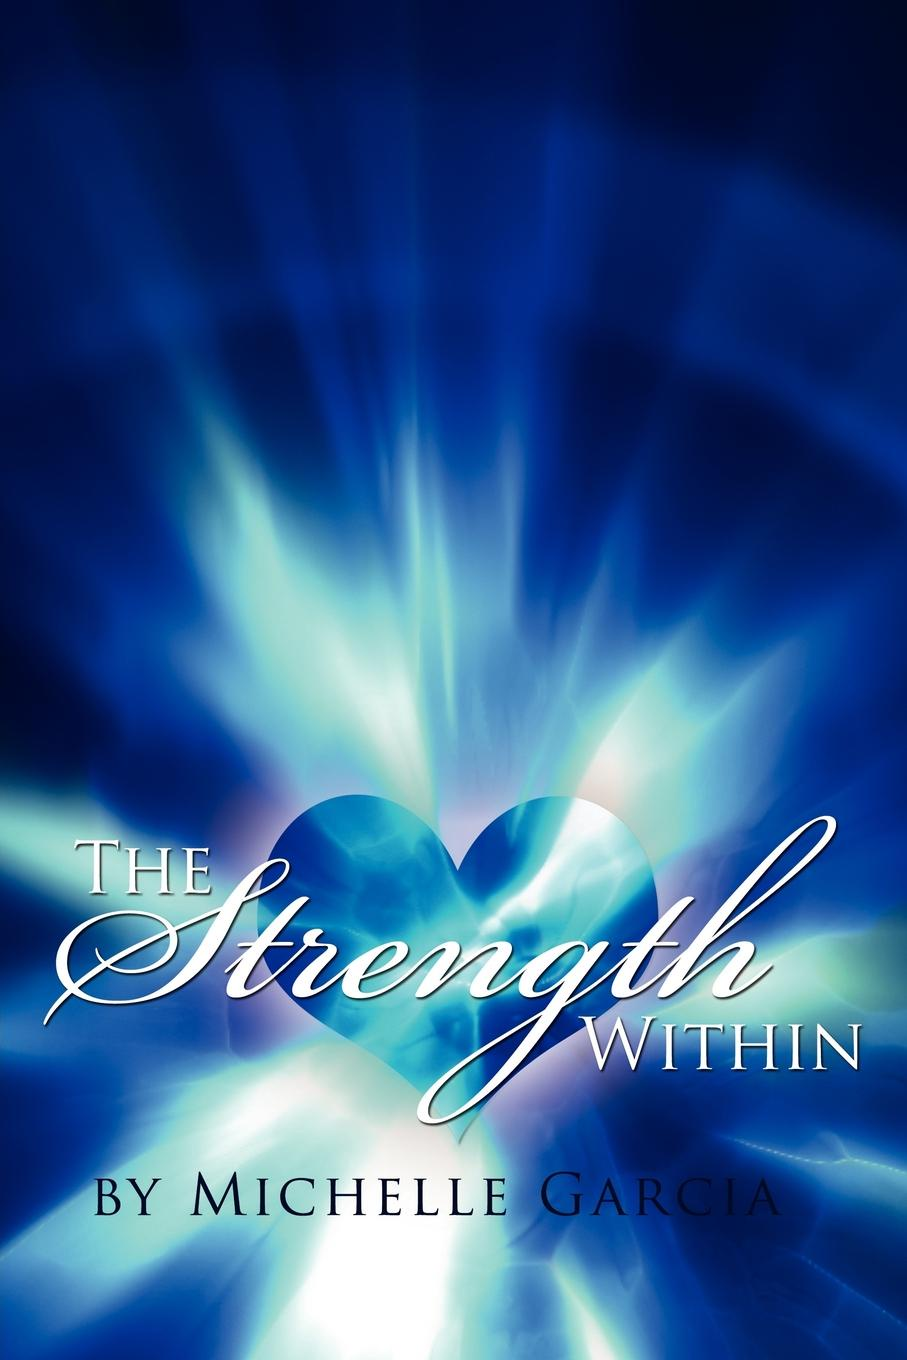 The Strength Within. Michelle Garcia